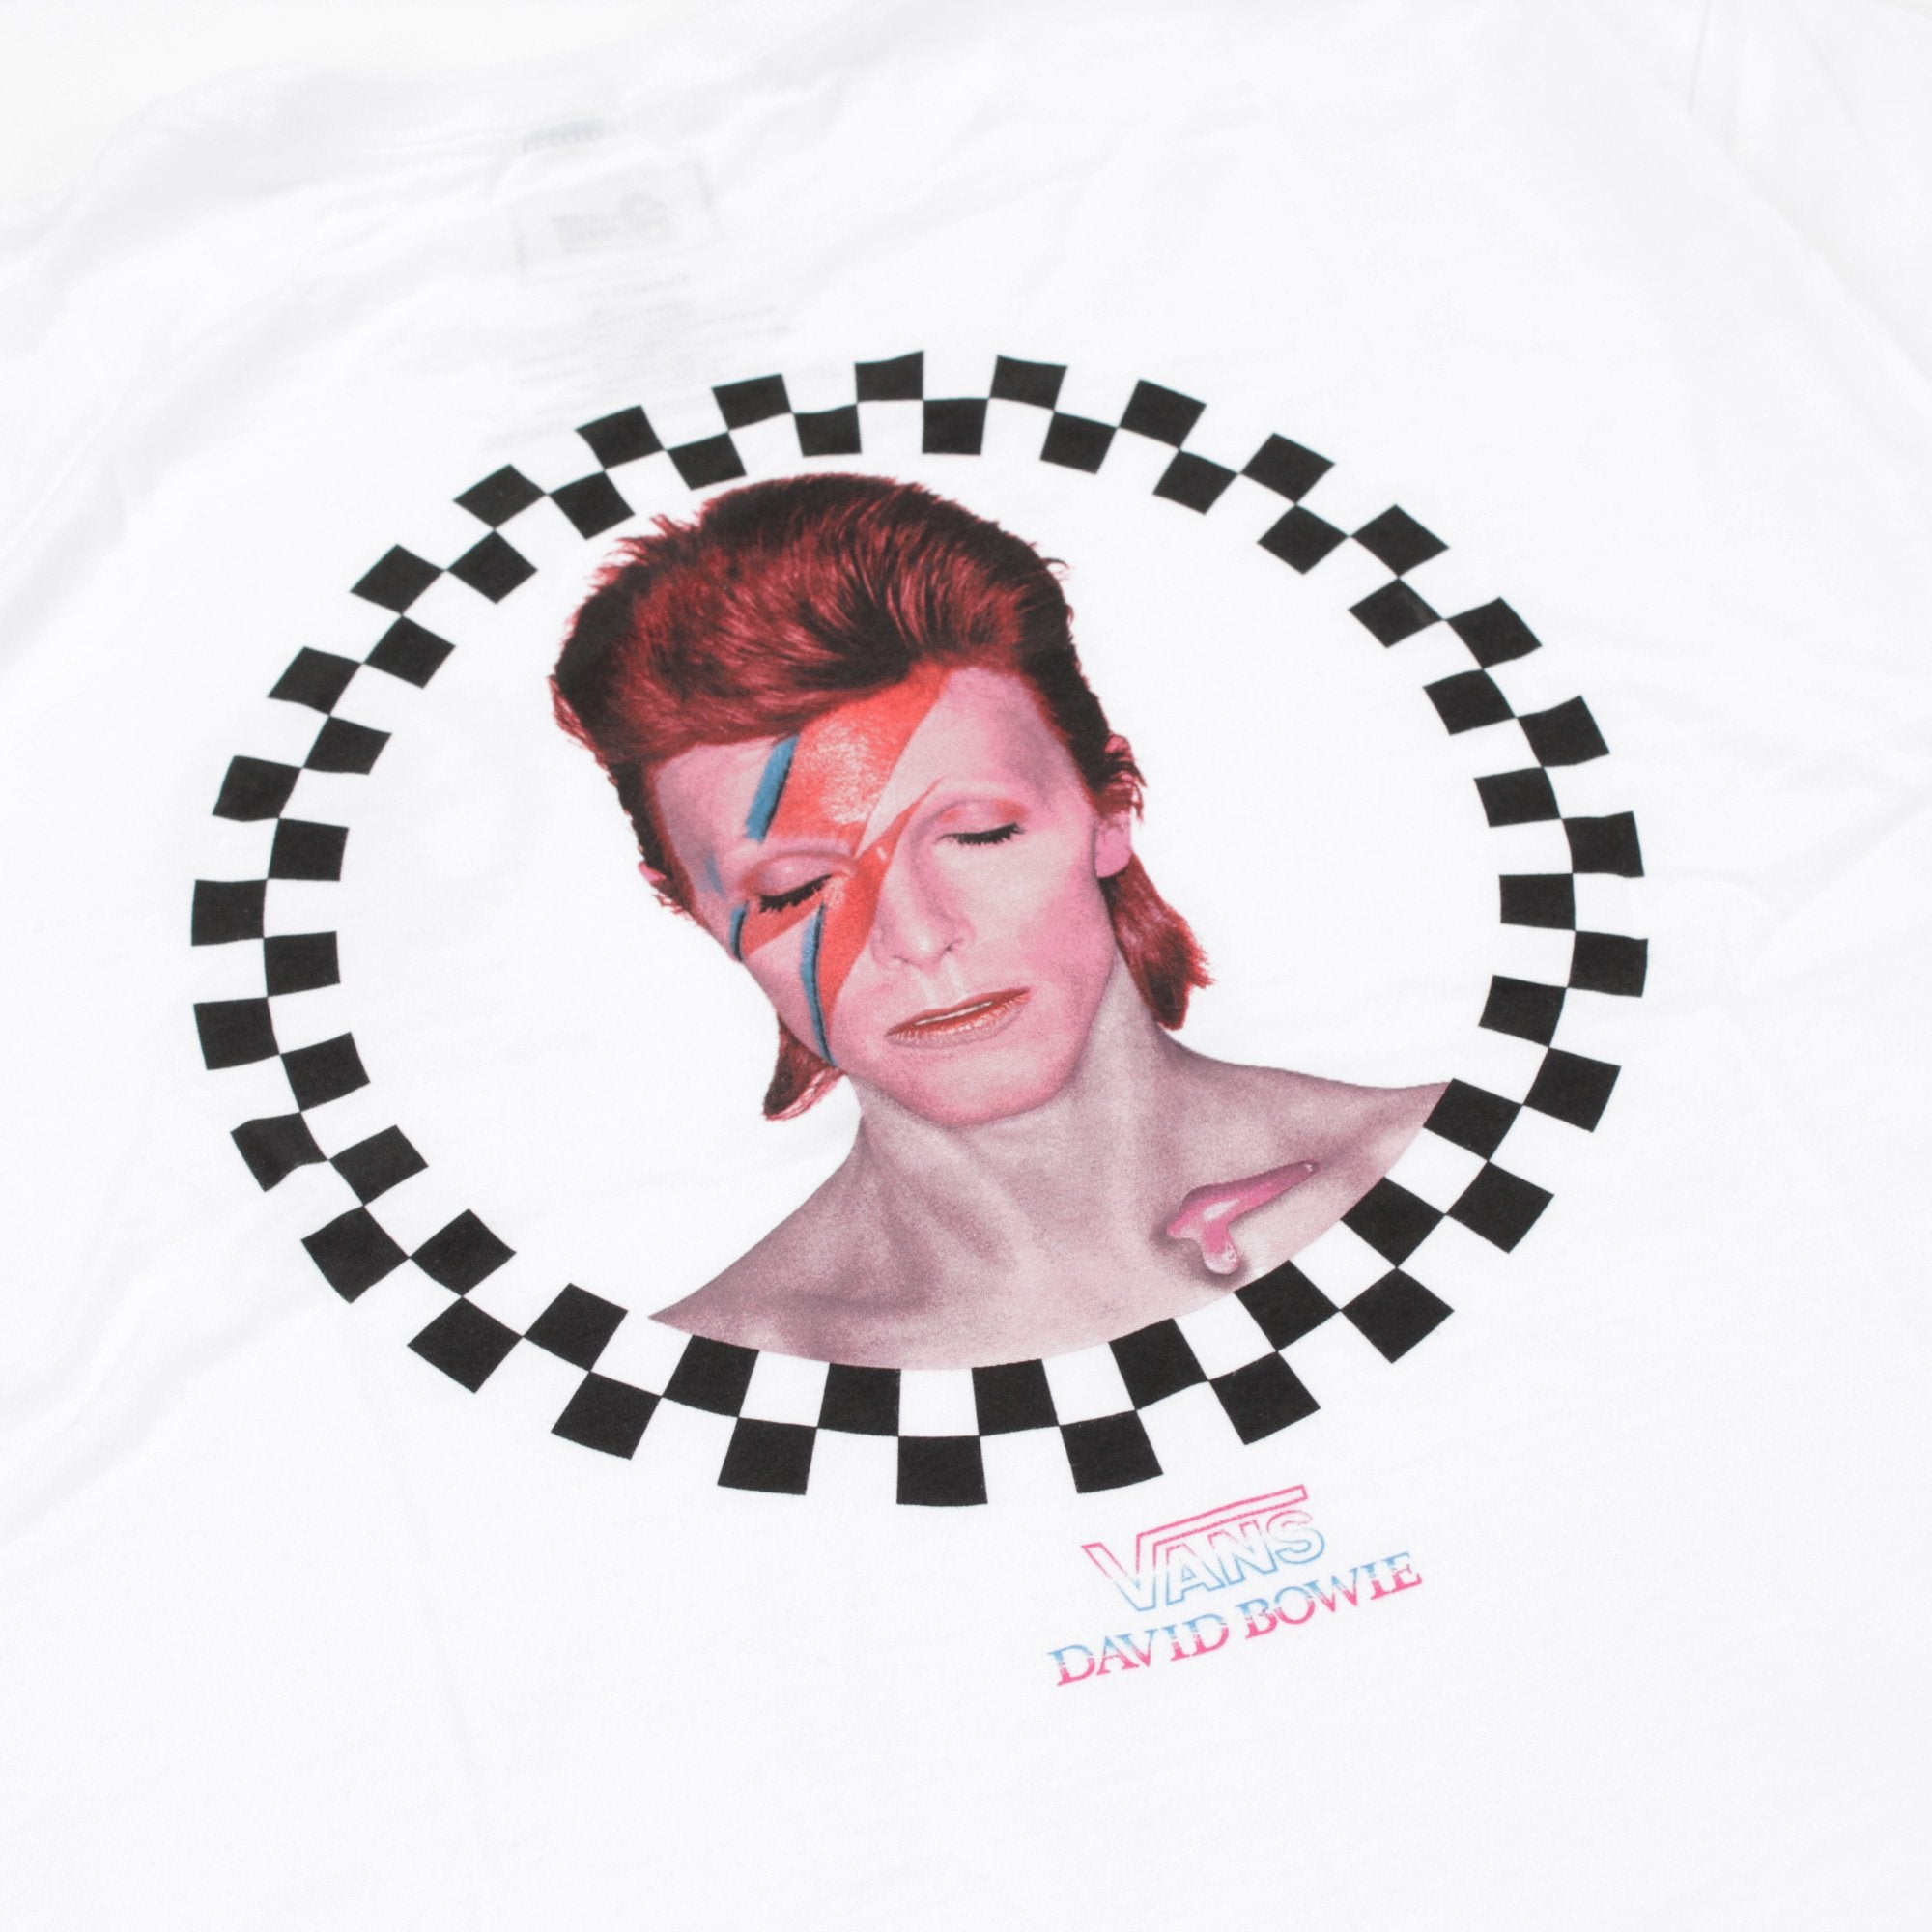 Vans x Bowie Aladdin Sane Tee Product Photo #3